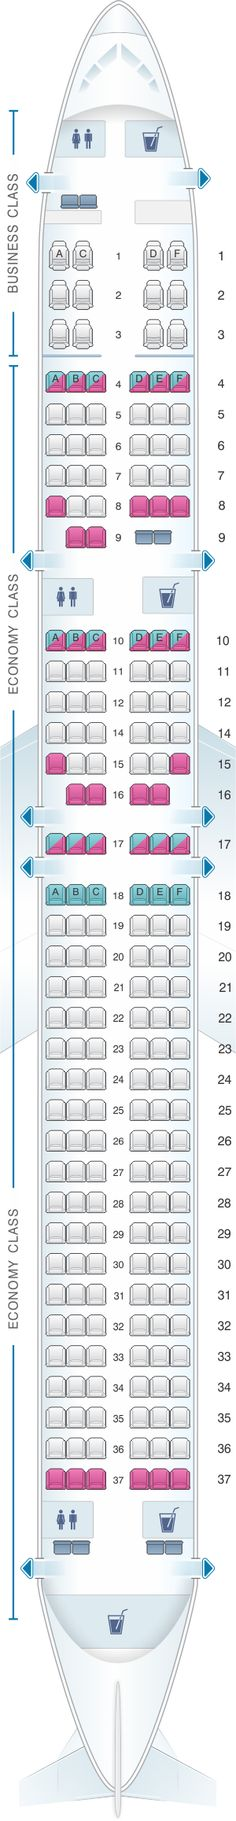 9 Best Xiamen Airlines images in 2017 | Airplane seats